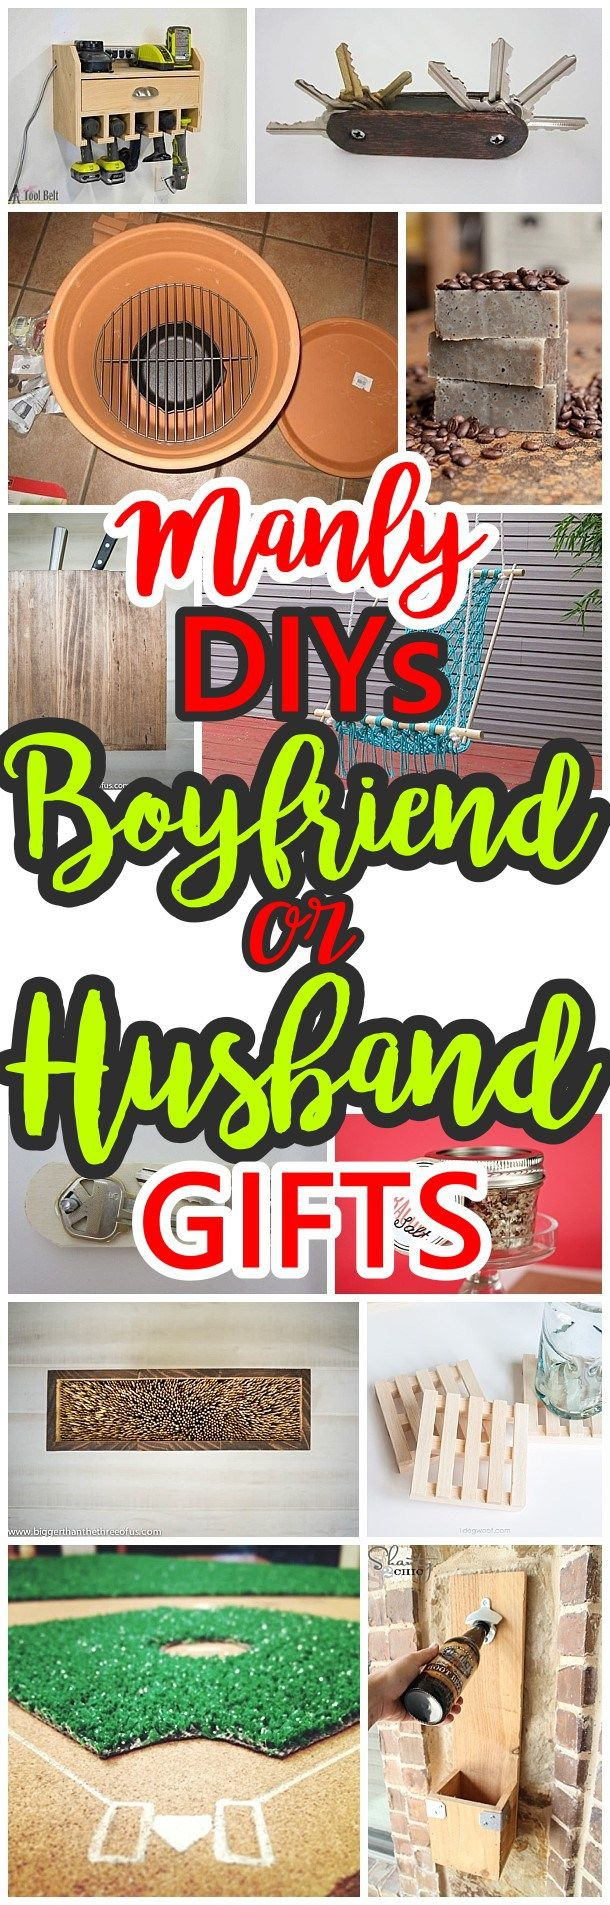 Awesome diy gift ideas mom and dad will love homemade christmas do it yourself manly gift ideas for boyfriends husbands sons brothers uncles solutioingenieria Images